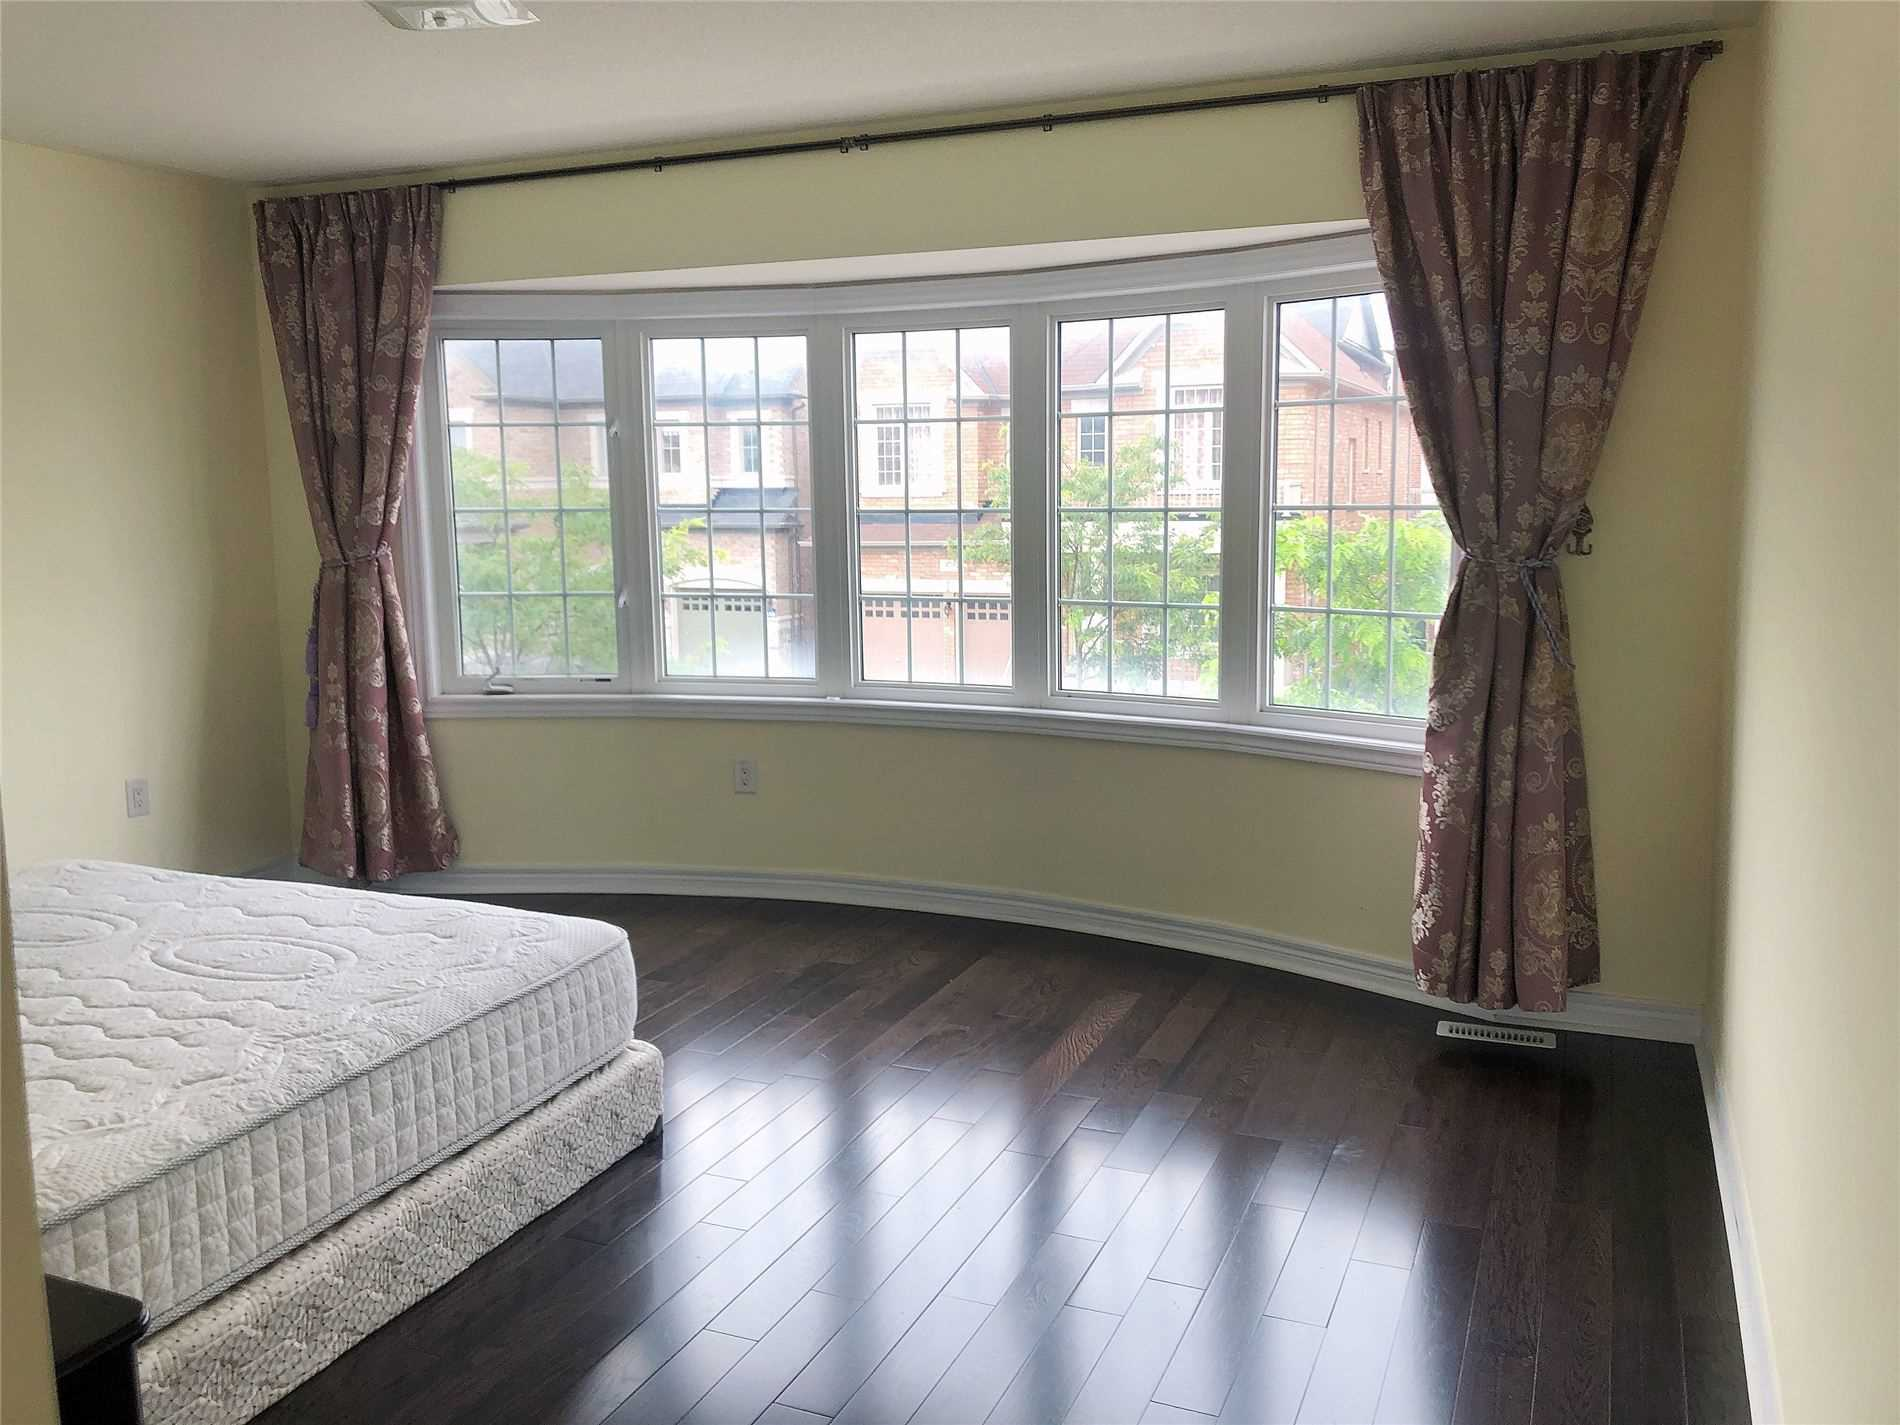 Detached house For Lease In Markham - 30 Holst Ave, Markham, Ontario, Canada L6C0S7 , 4 Bedrooms Bedrooms, ,4 BathroomsBathrooms,Detached,For Lease,Holst